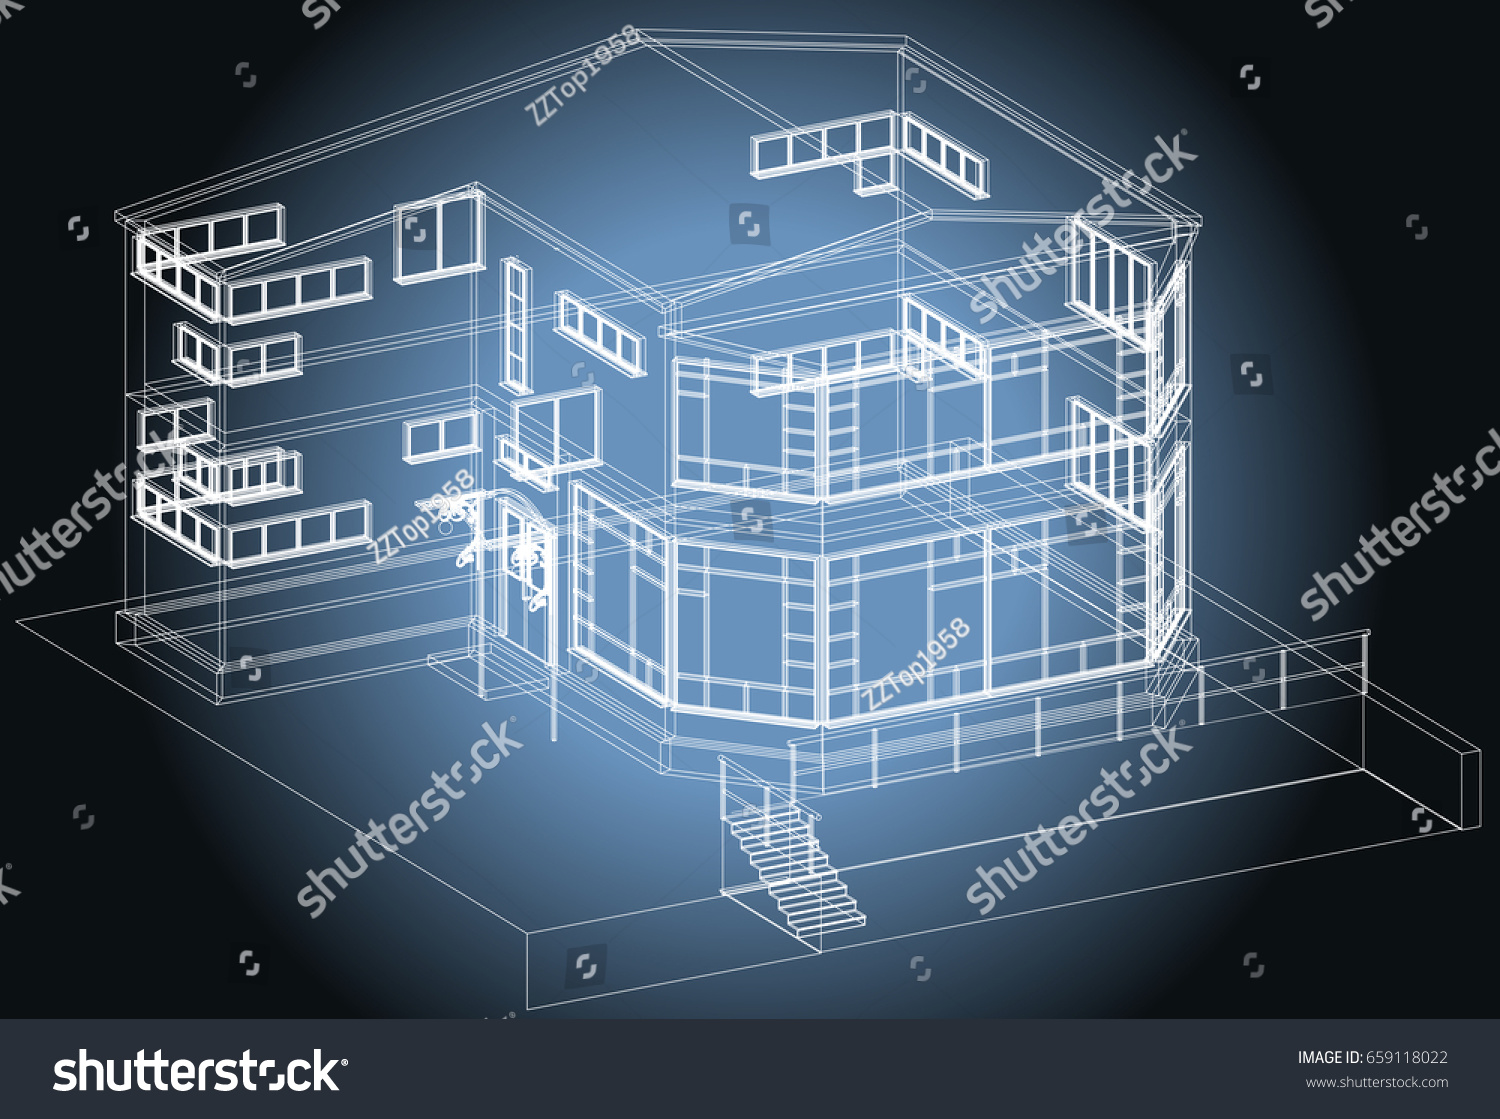 Architecture design blueprint architectural design blueprint architecture design blueprint architectural design blueprint public building artistic forging exhibition malvernweather Images